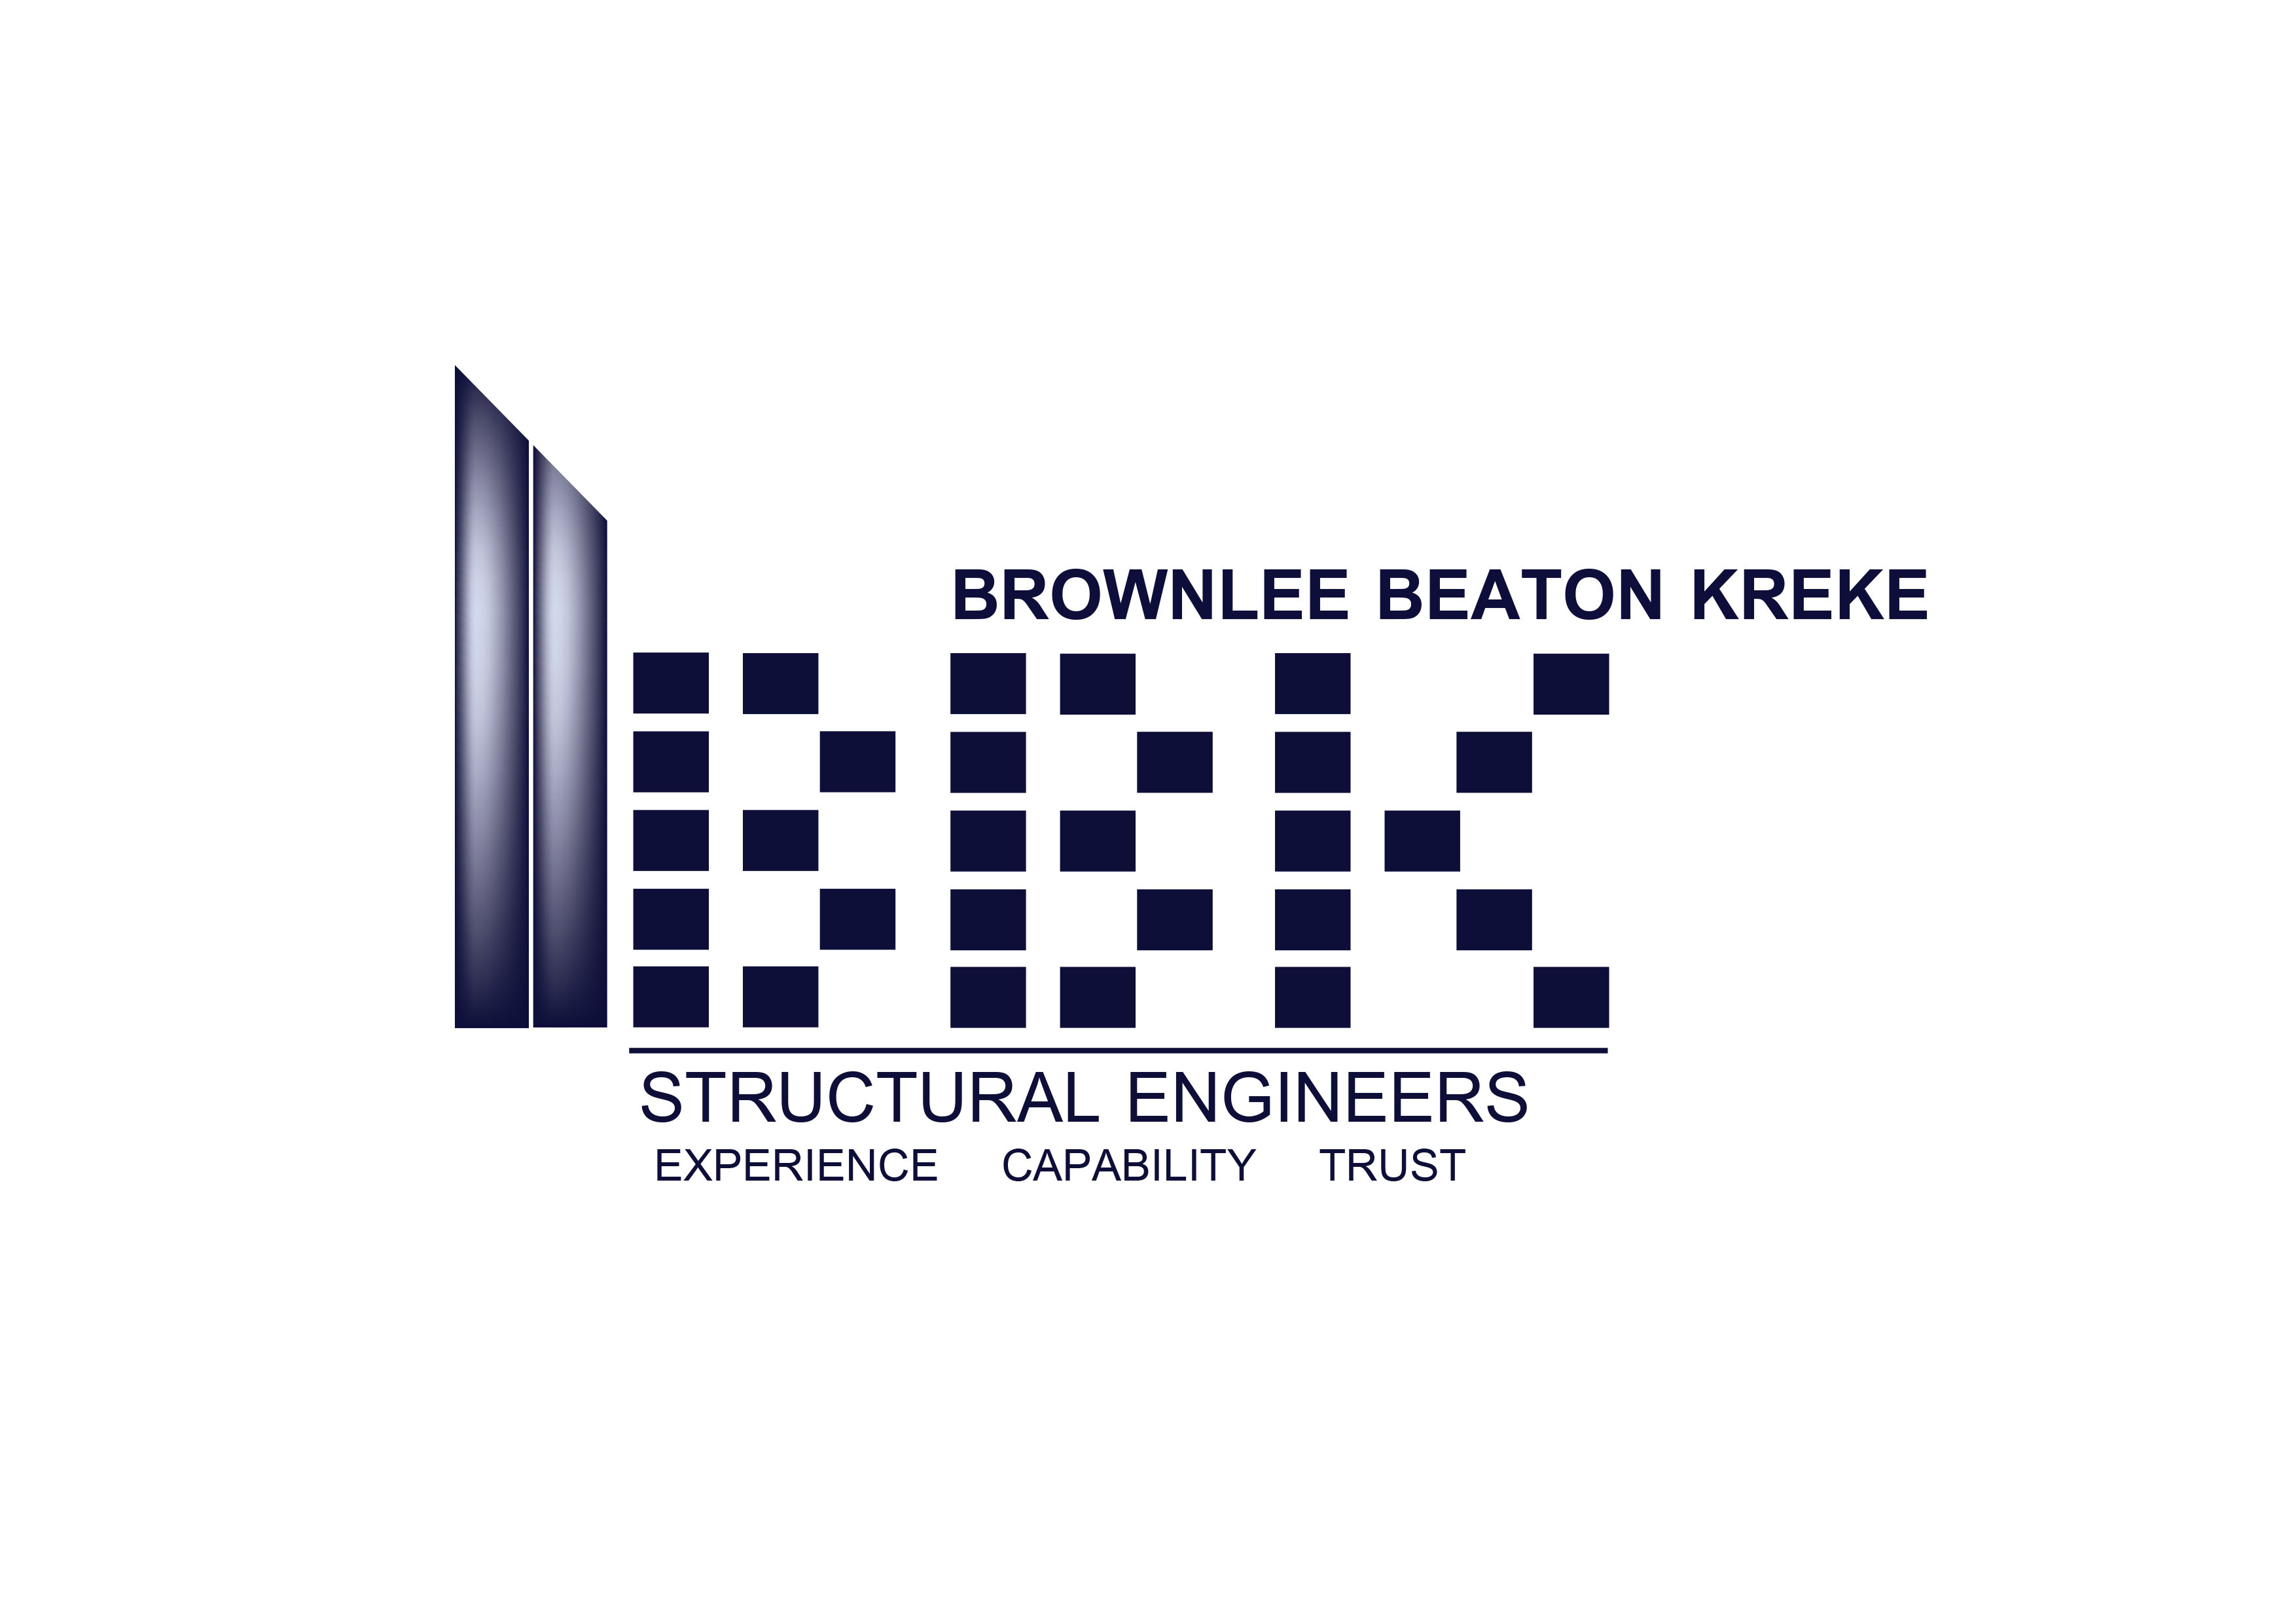 Logo Design by Sridhar Jarupala - Entry No. 73 in the Logo Design Contest Logo Design Needed for Exciting New Company BBK Consulting Engineers.